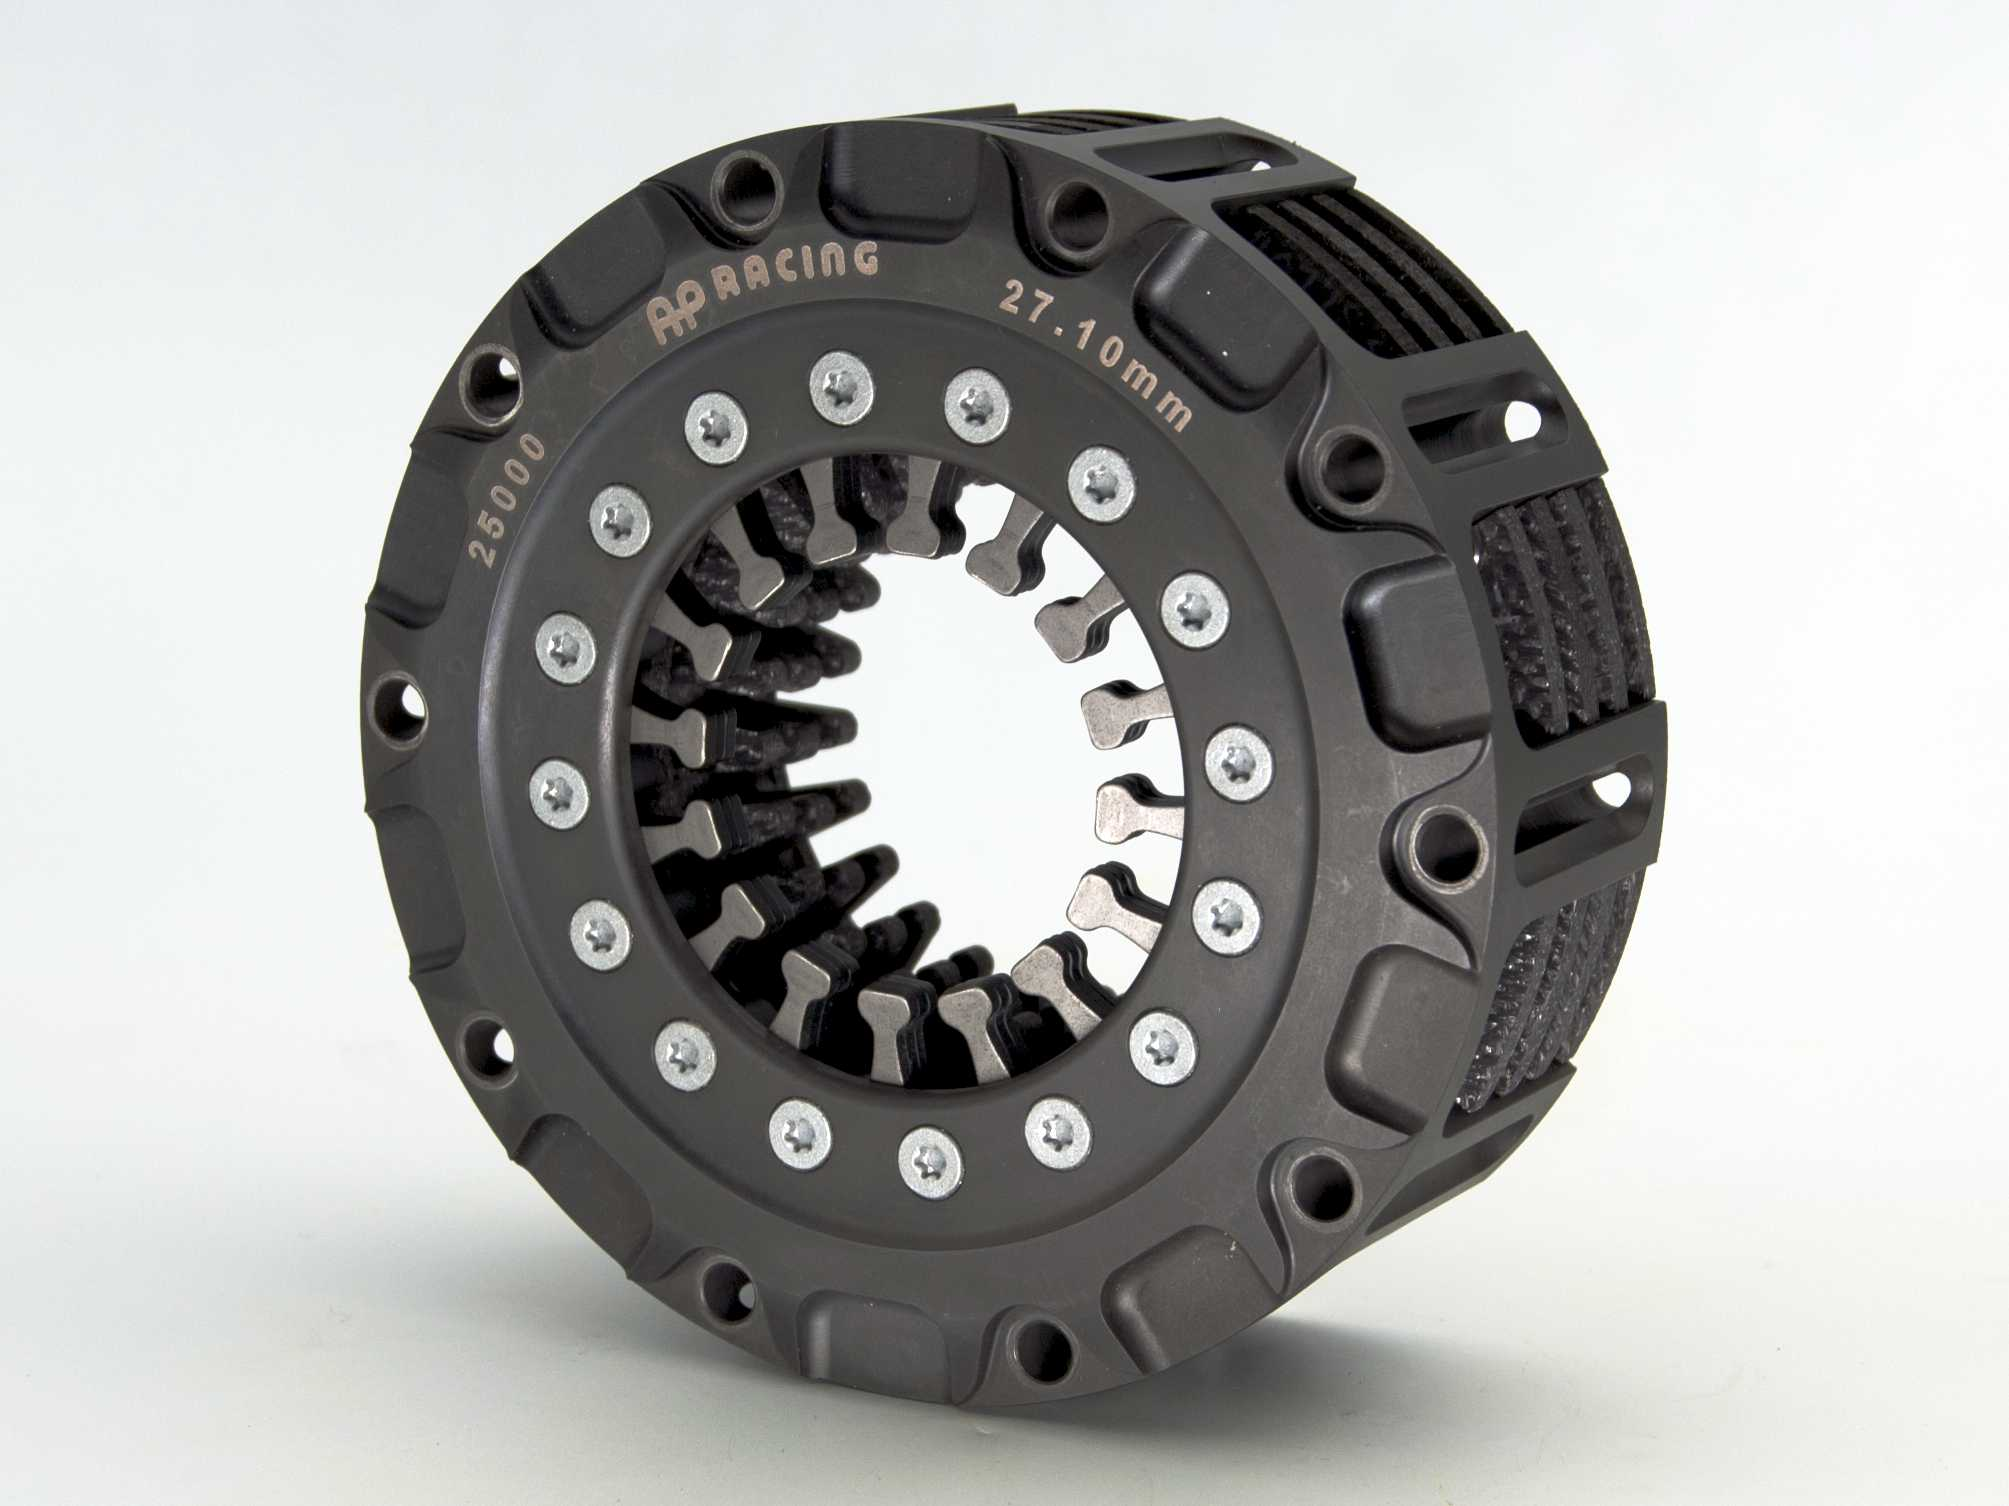 Carbon/Carbon Clutch Milestone - Featured Image